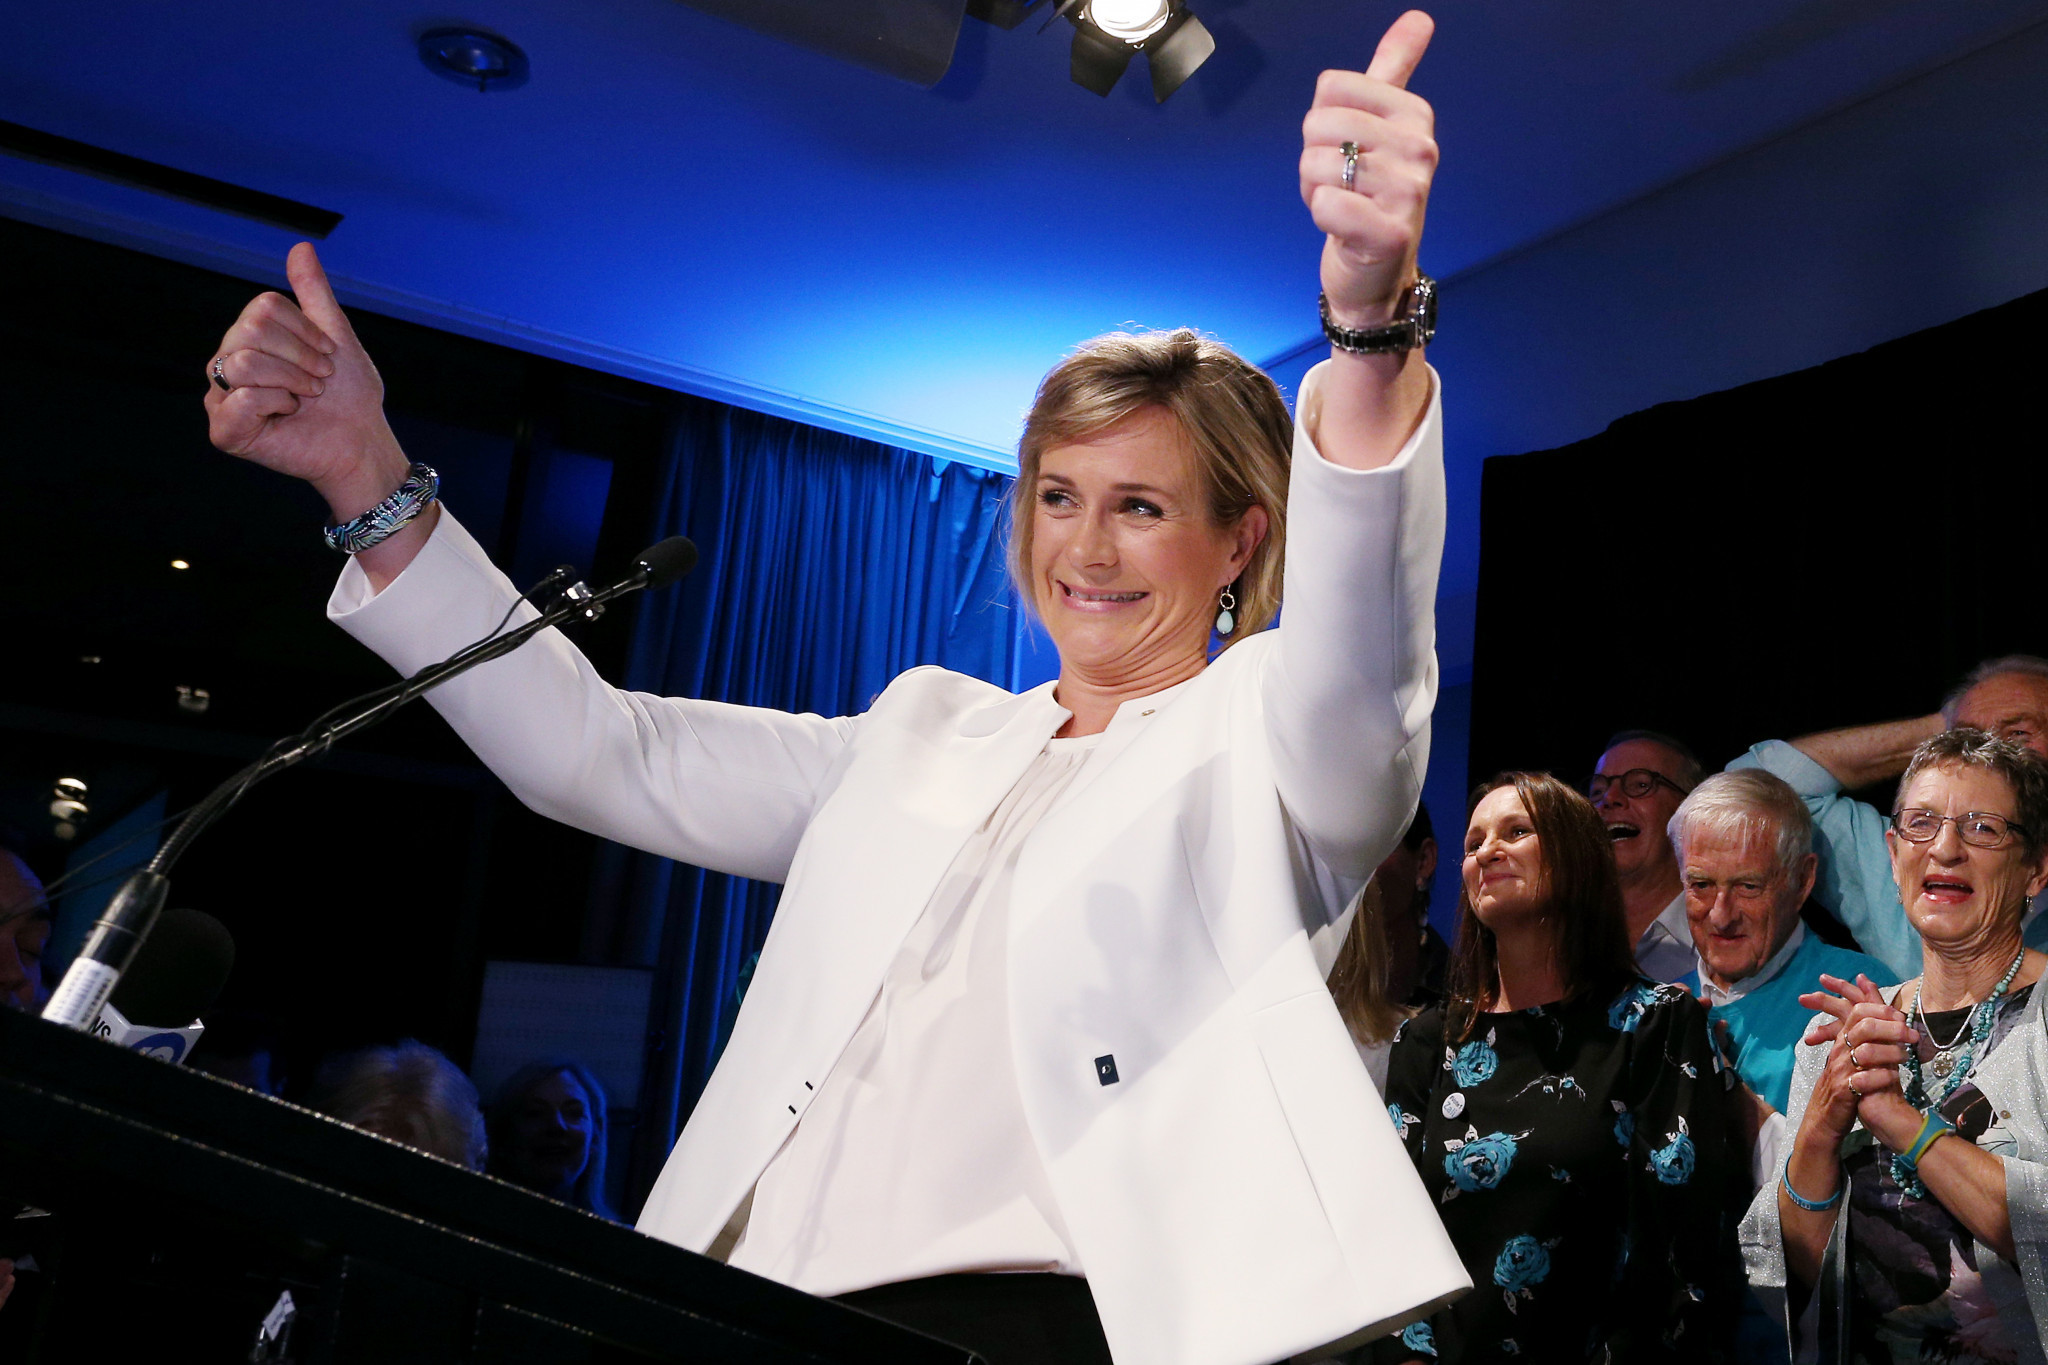 Zali Steggall celebrates unseating former Prime Minster Tony Abbott ©Getty Images